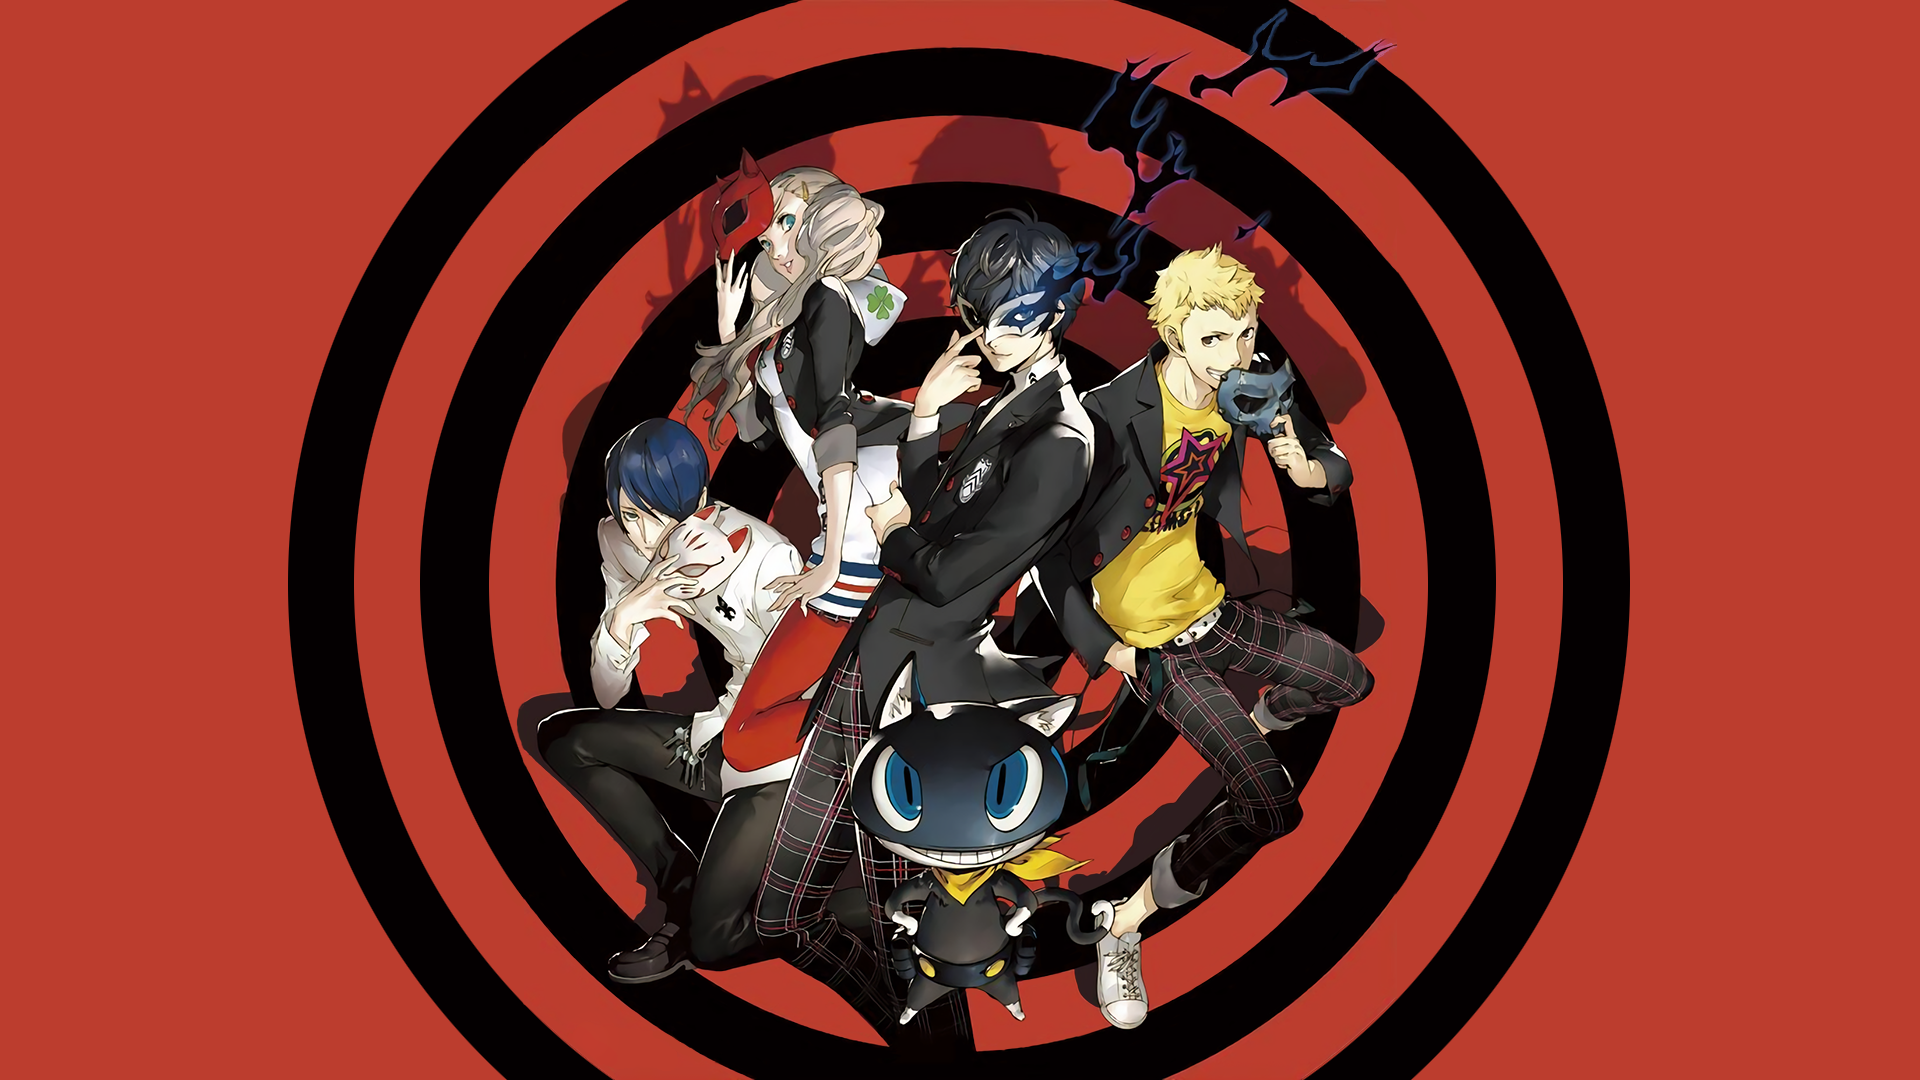 persona 5 anime persona series red background